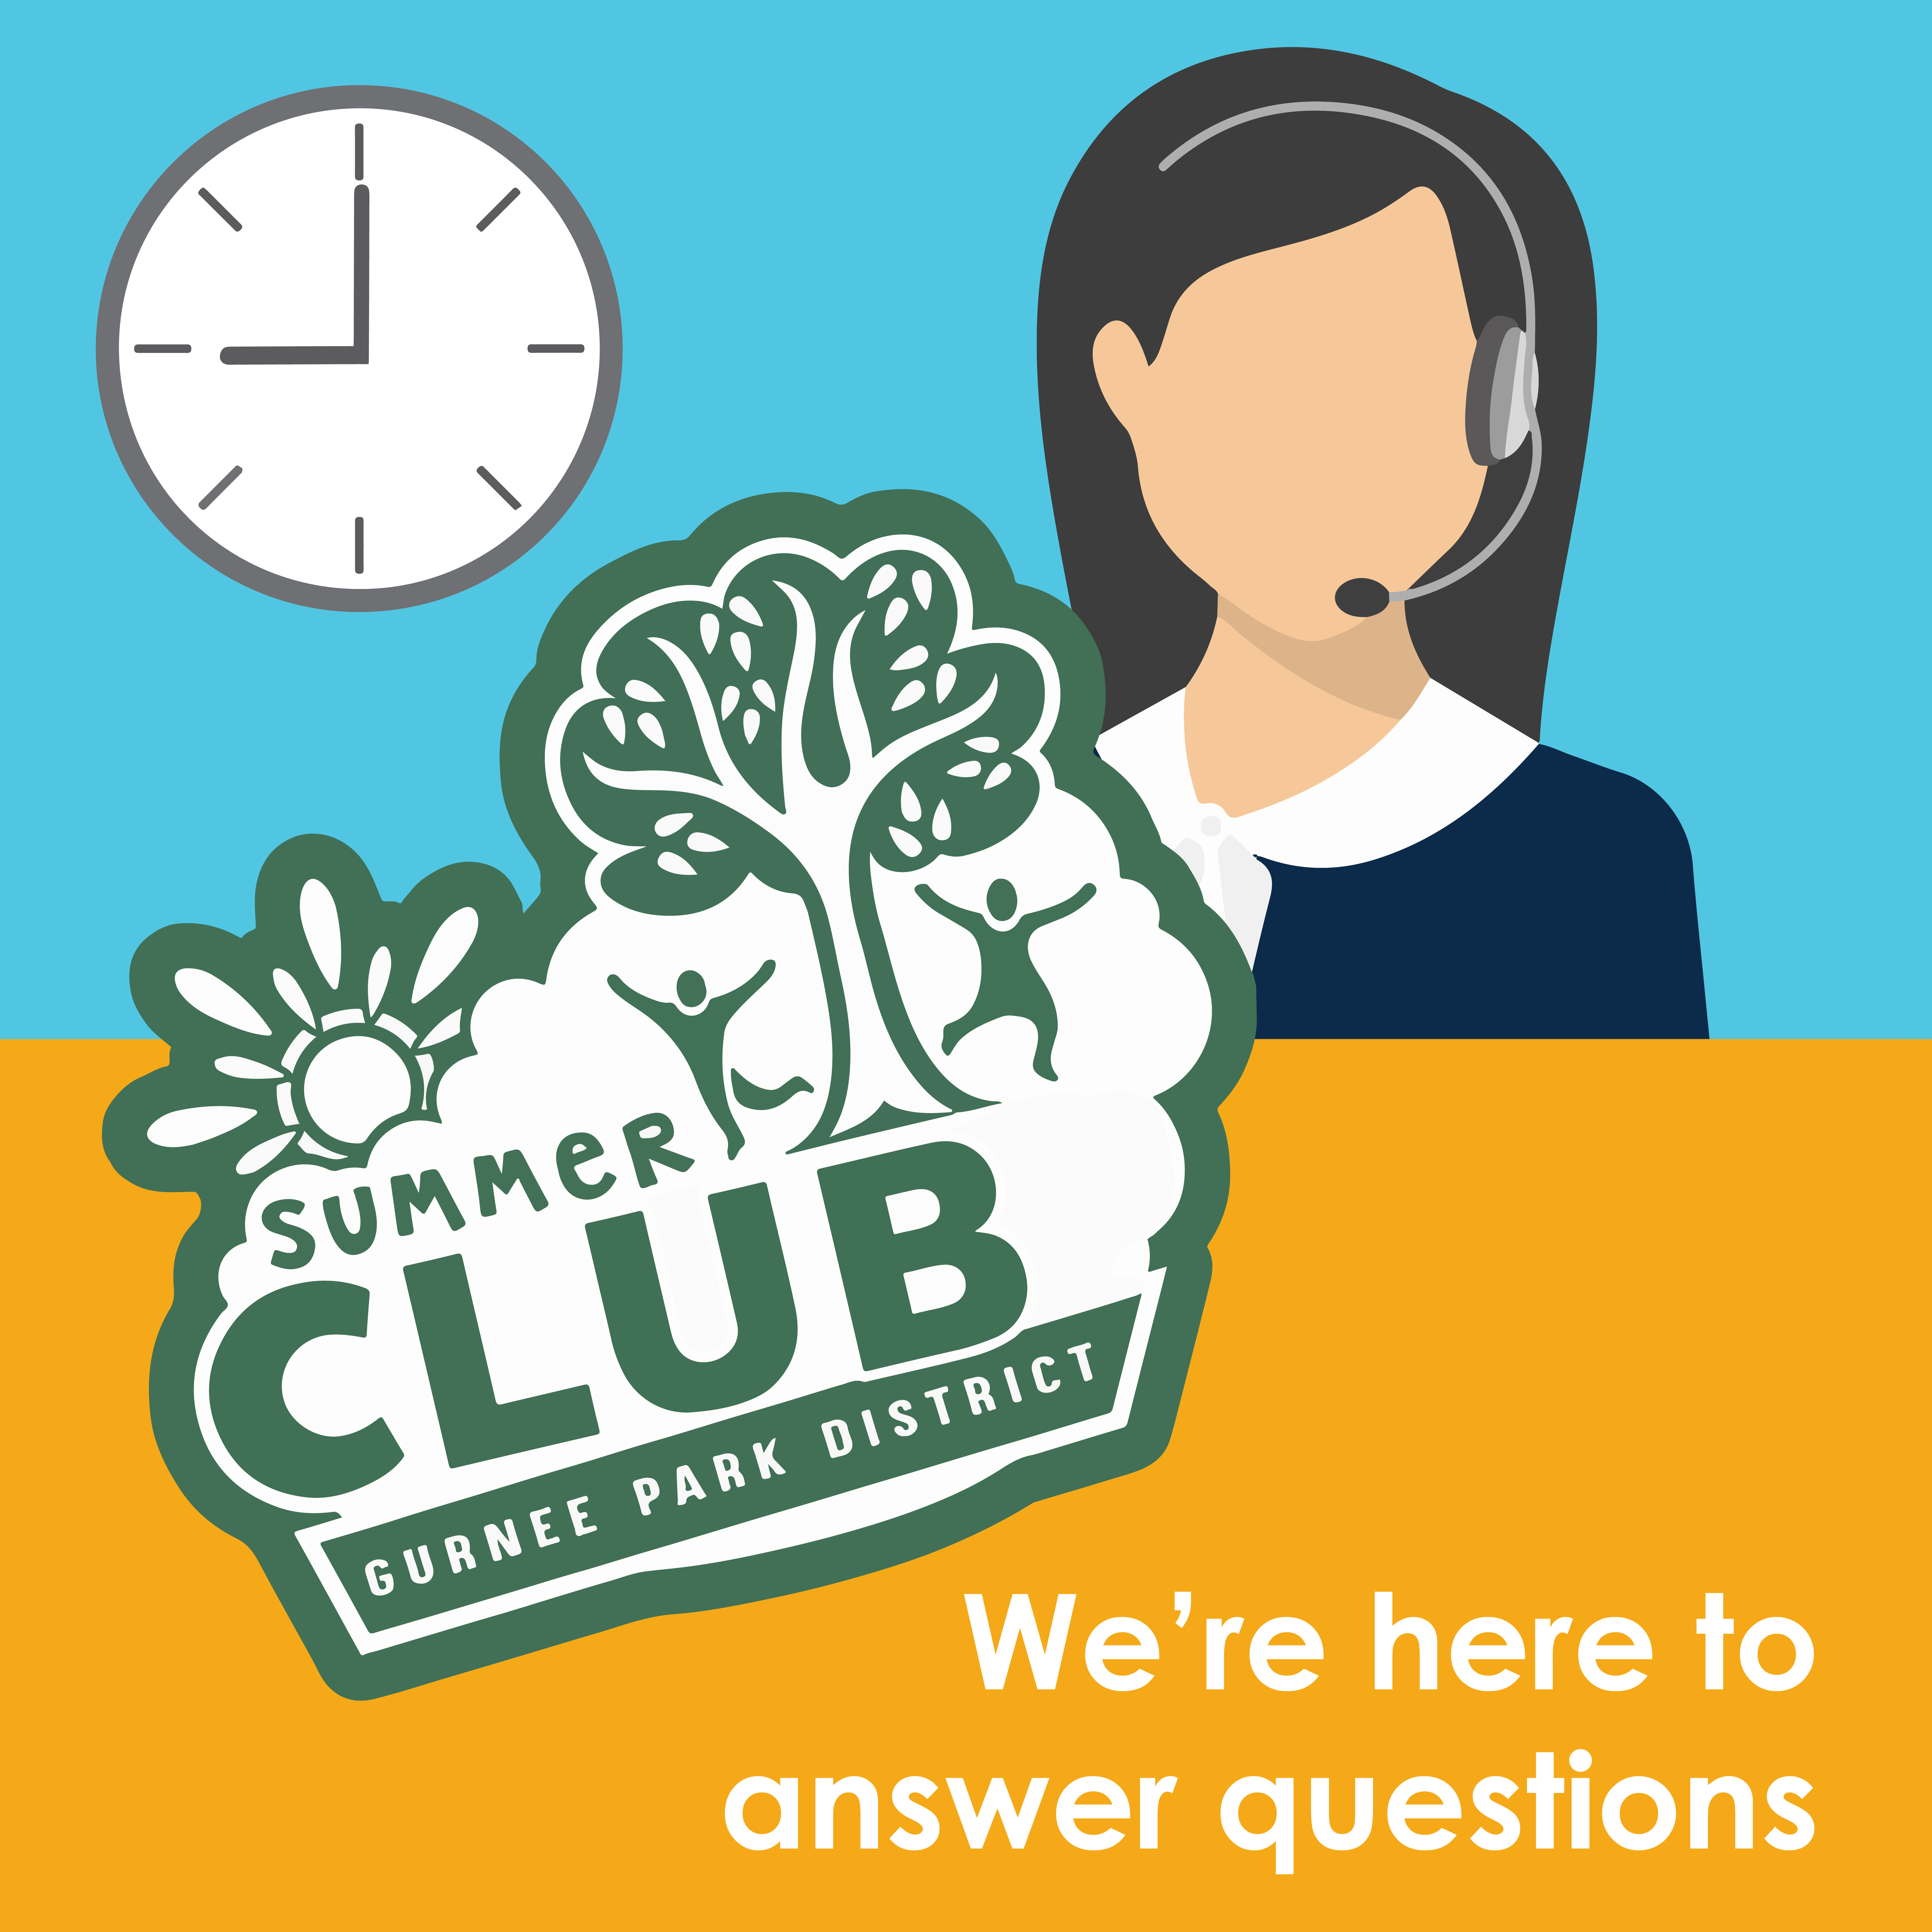 Customer service is available to answer your questions Monday - Friday from 9 am - 2 pm.